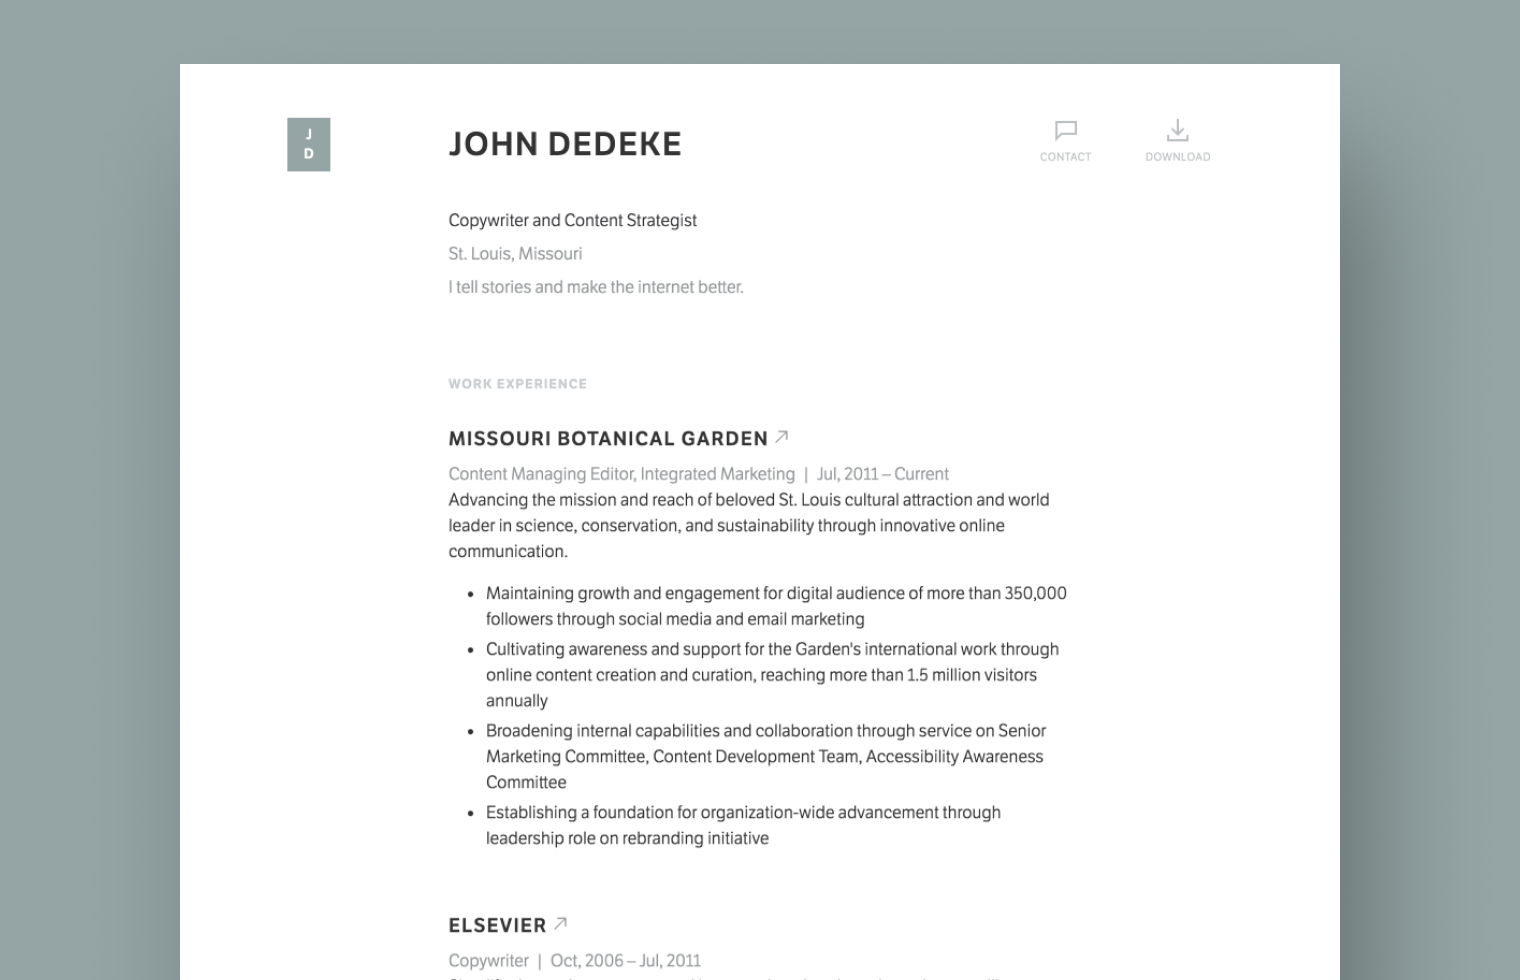 Copywriter resume example built with Standard Resume